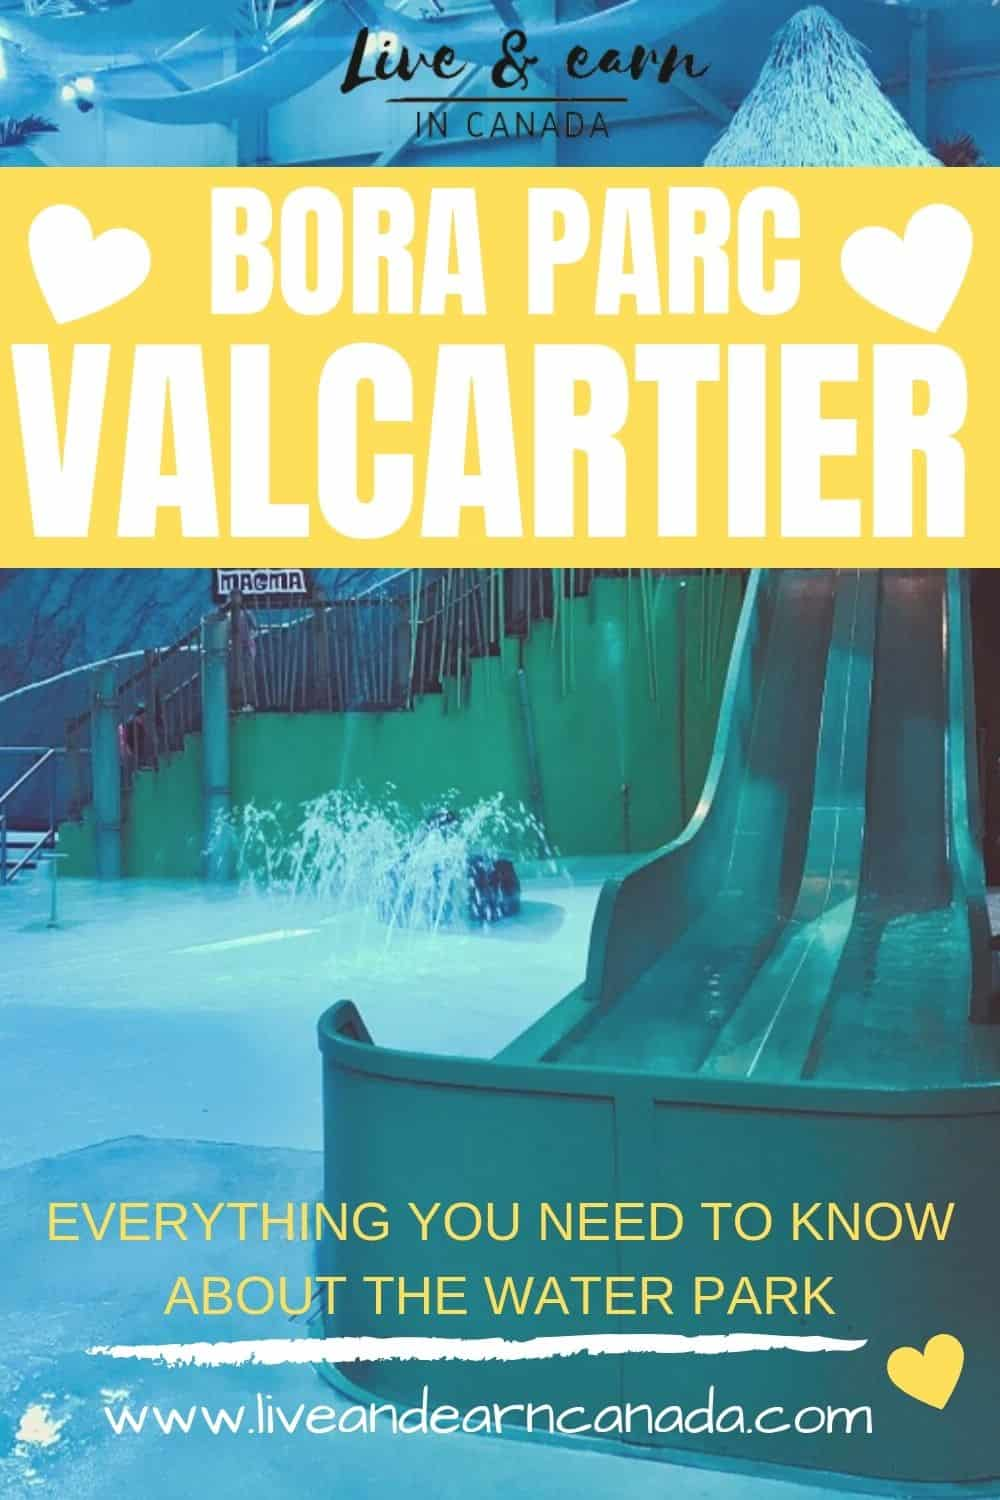 Here is a full review about VALCARTIER BORA PARC – INDOOR WATER PARK IN QUEBEC FOR FAMILIES! Book your water park at Bora Parc #liveandearncanada #travelwithkids #travelkids #quebeccity #valcartier